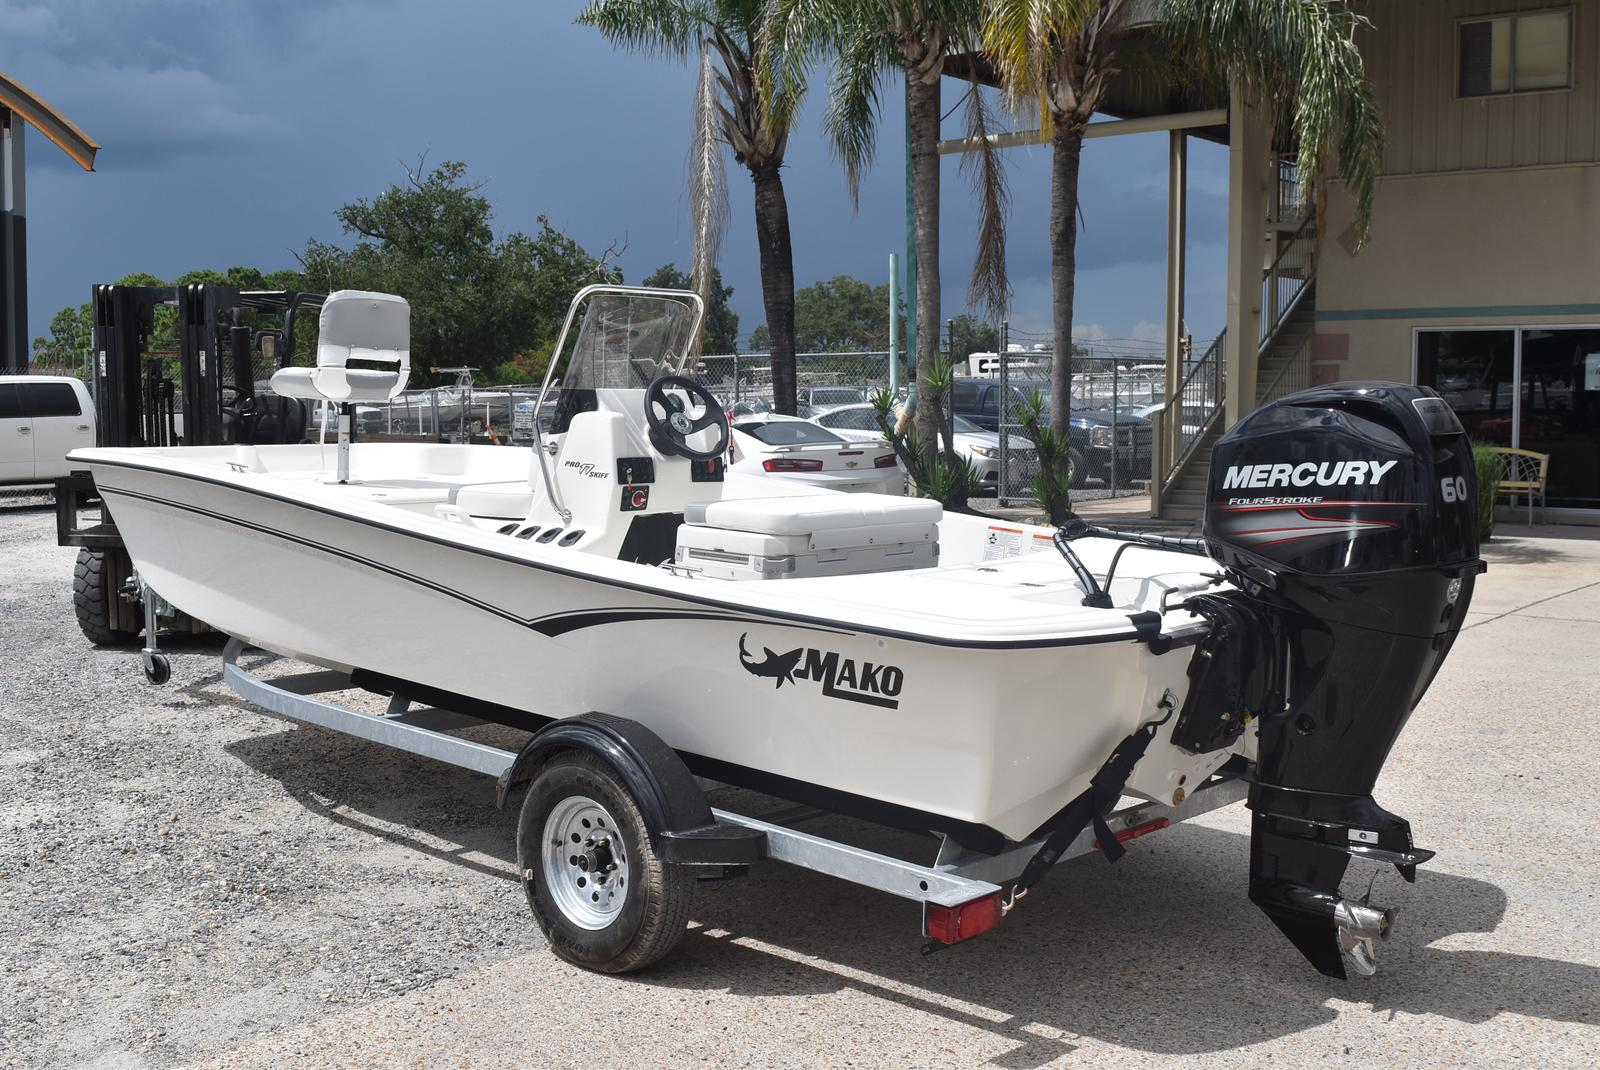 2020 Mako boat for sale, model of the boat is Pro Skiff 17, 75 ELPT & Image # 181 of 702